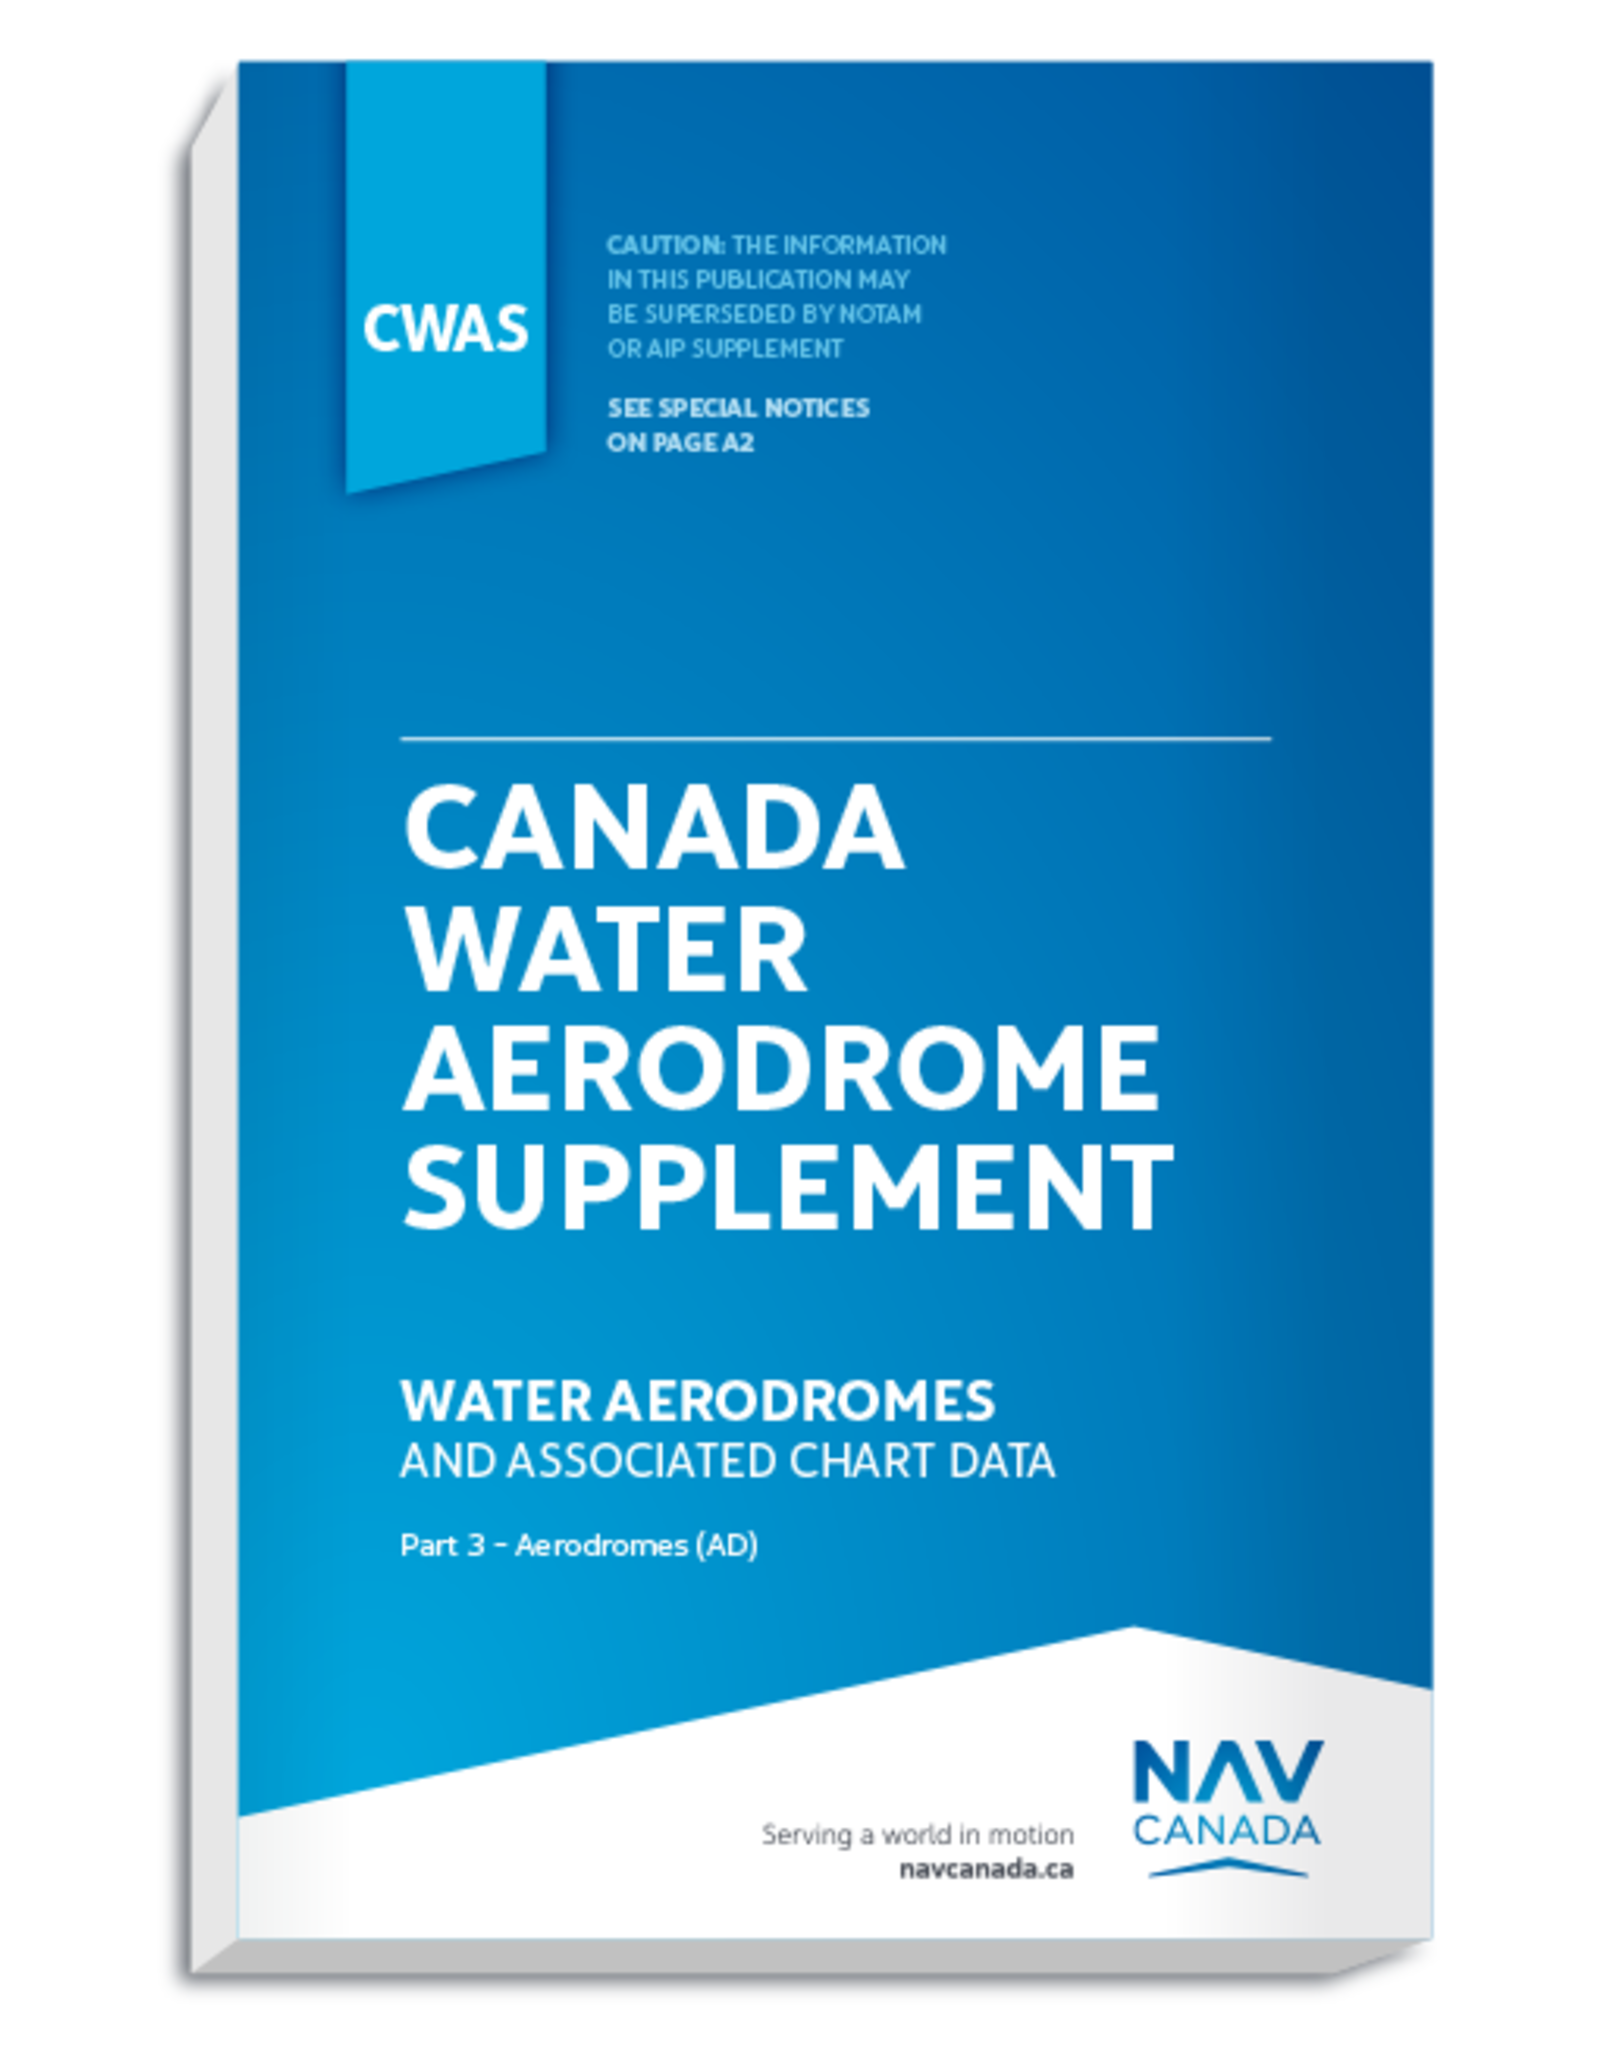 Canada Water Supplement - Apr 22, 2021 to Mar 24, 2022